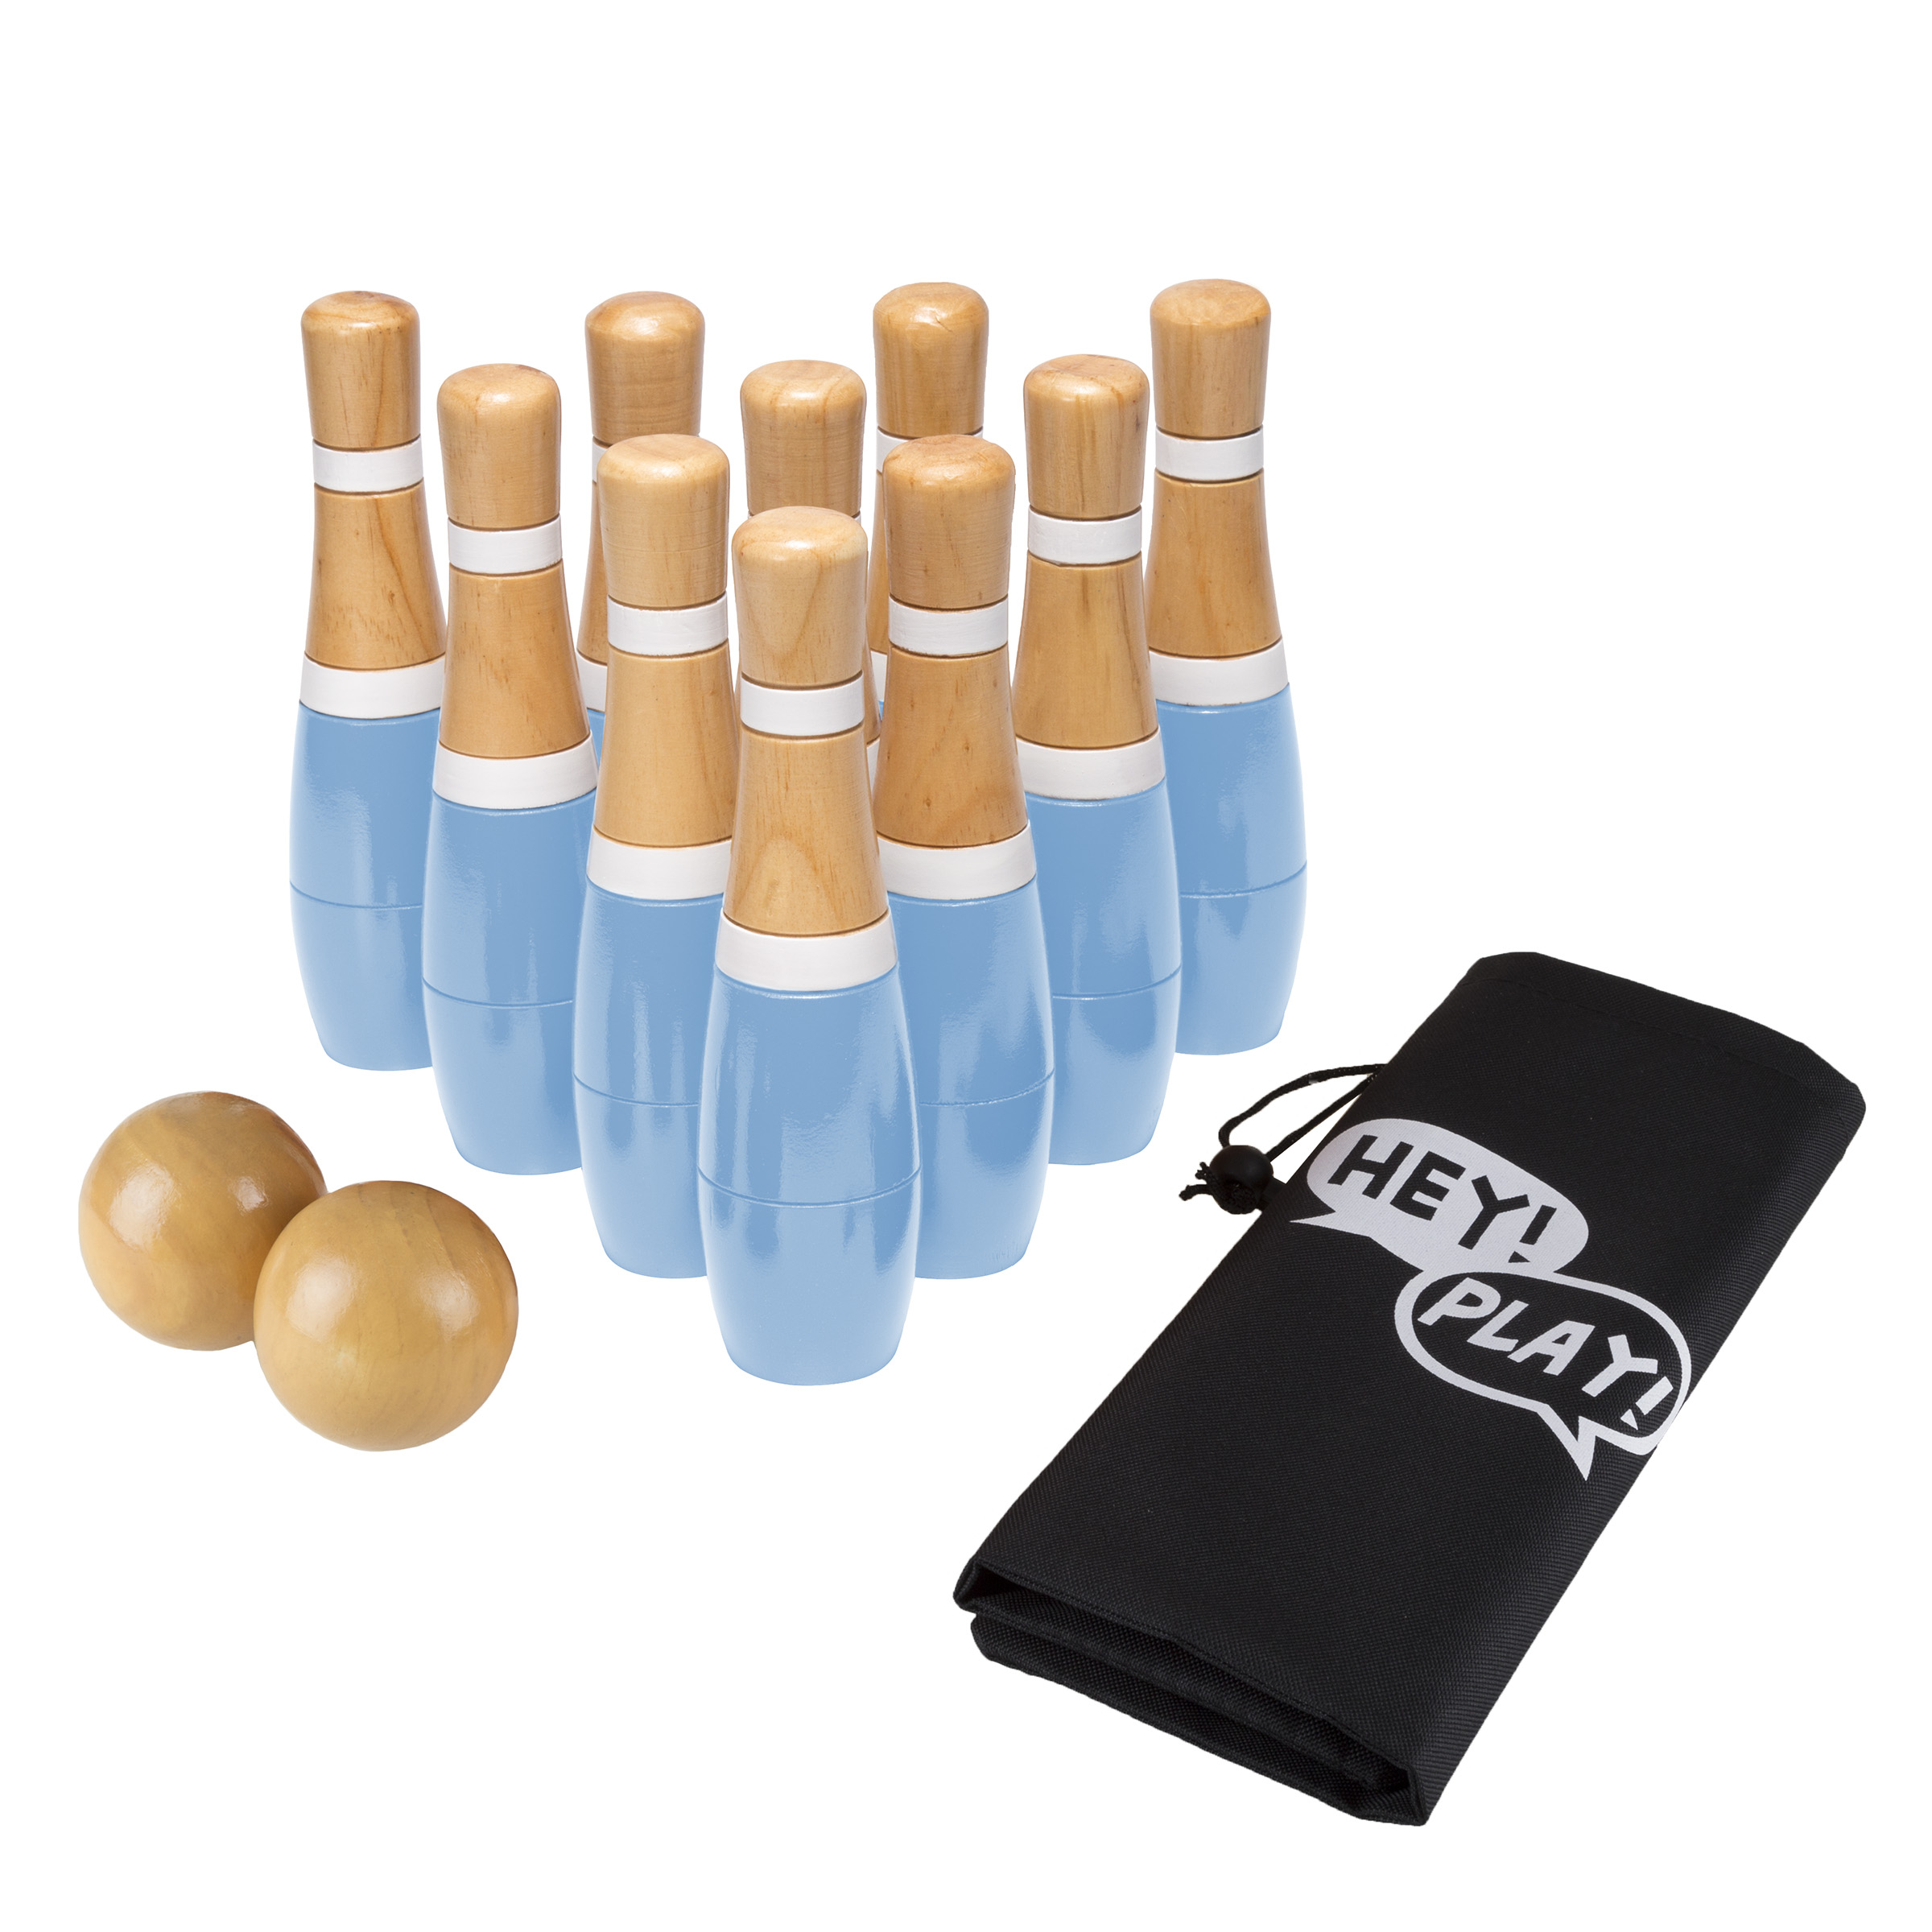 Lawn Bowling Game/Skittle Ball- Indoor/Outdoor Fun for Kids, Adults – 10 Wooden Pins, 2 Balls & Mesh Bag Set by Hey! Play! (8 Inch - Blue /White)